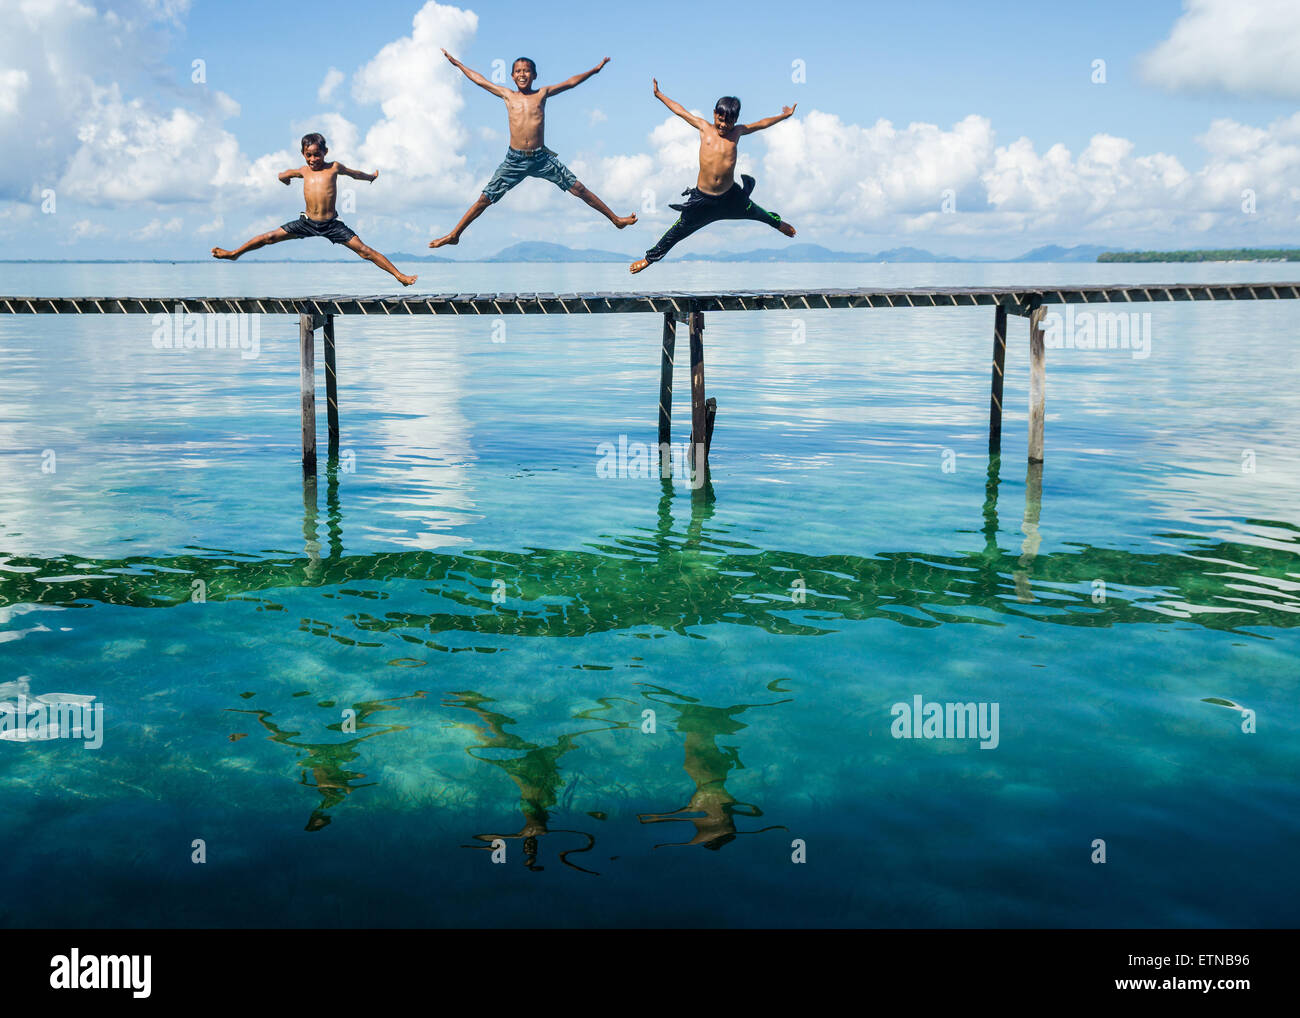 Three boys jumping in to the sea from a jetty, Salakan Island, Semporna, Sabah, Malaysia - Stock Image